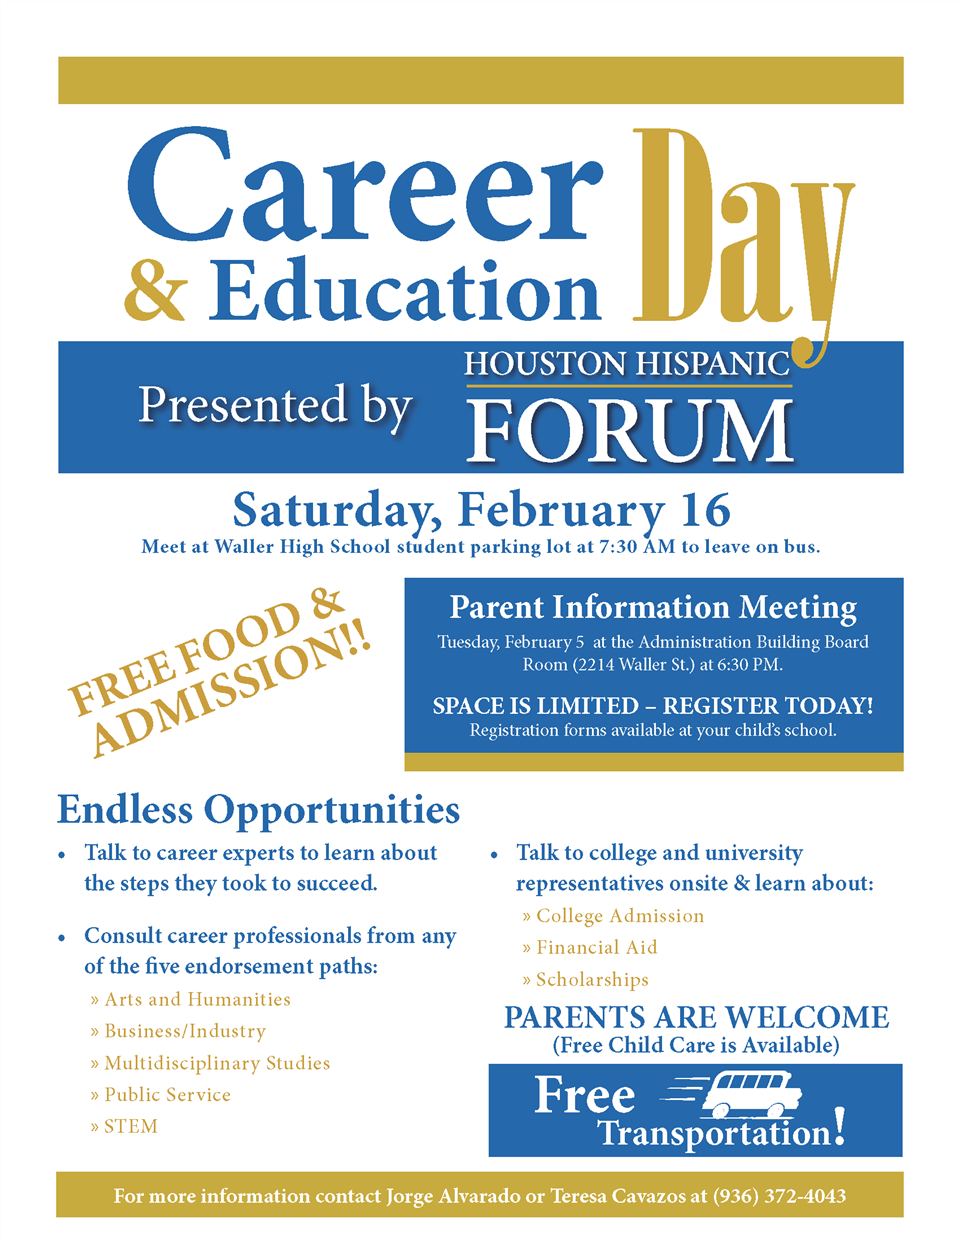 Career and Education Day Flyer